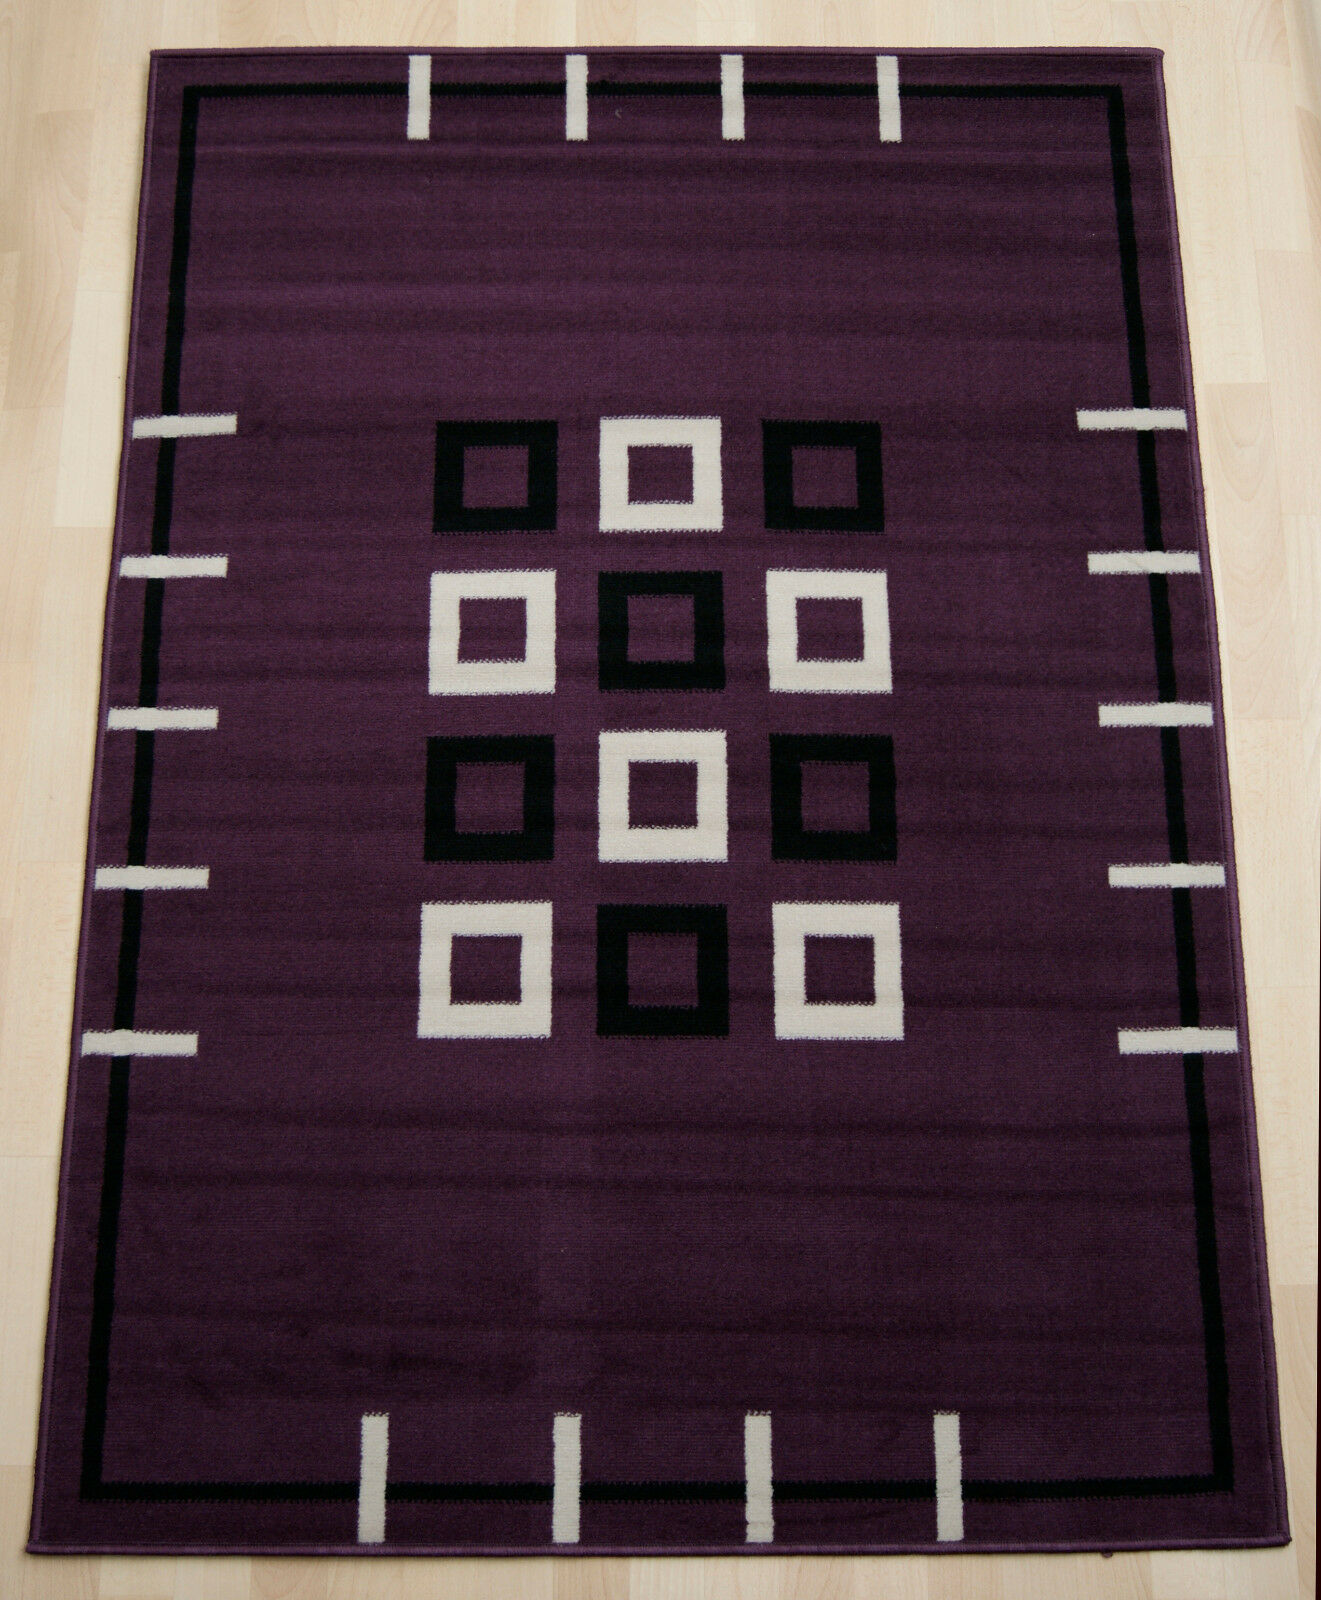 Cheap Cheap Cheap budget Violet Boîtes Moderne Extra Large living Room Bedroom Rug 190x280 cm. 2b425e